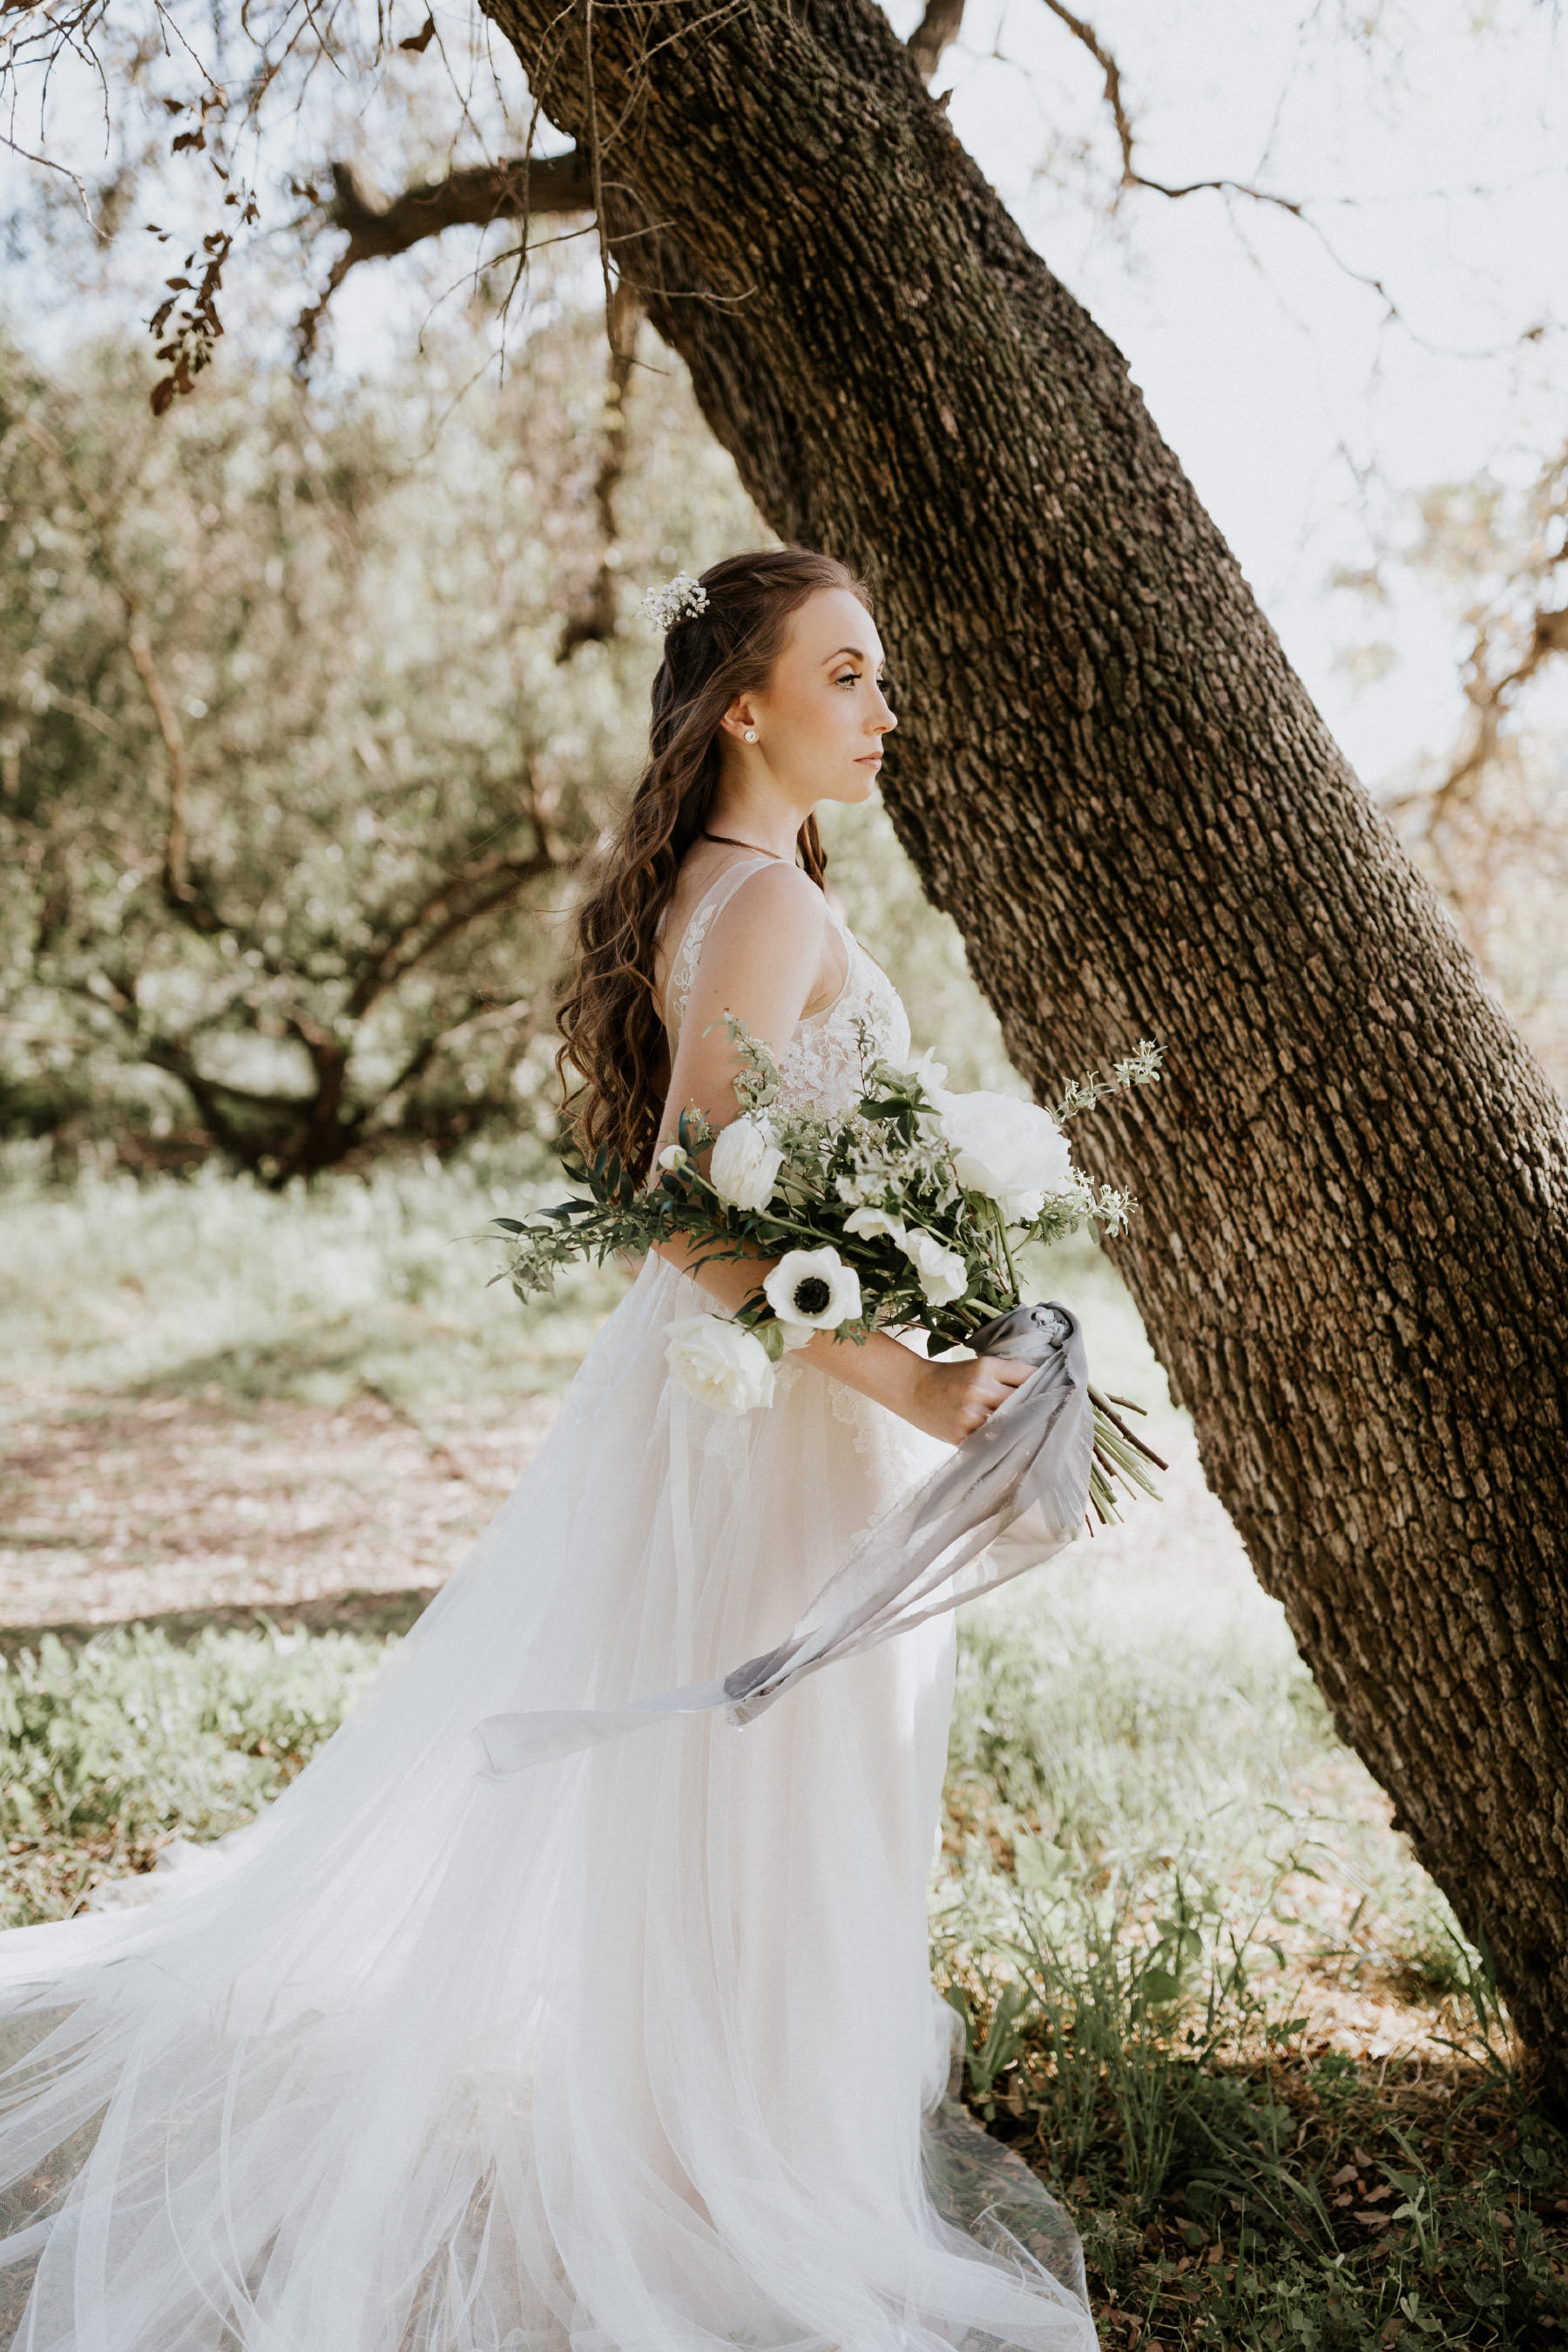 BHLDN dress with bouquet of white roses anemone flowers and raw edge ribbon